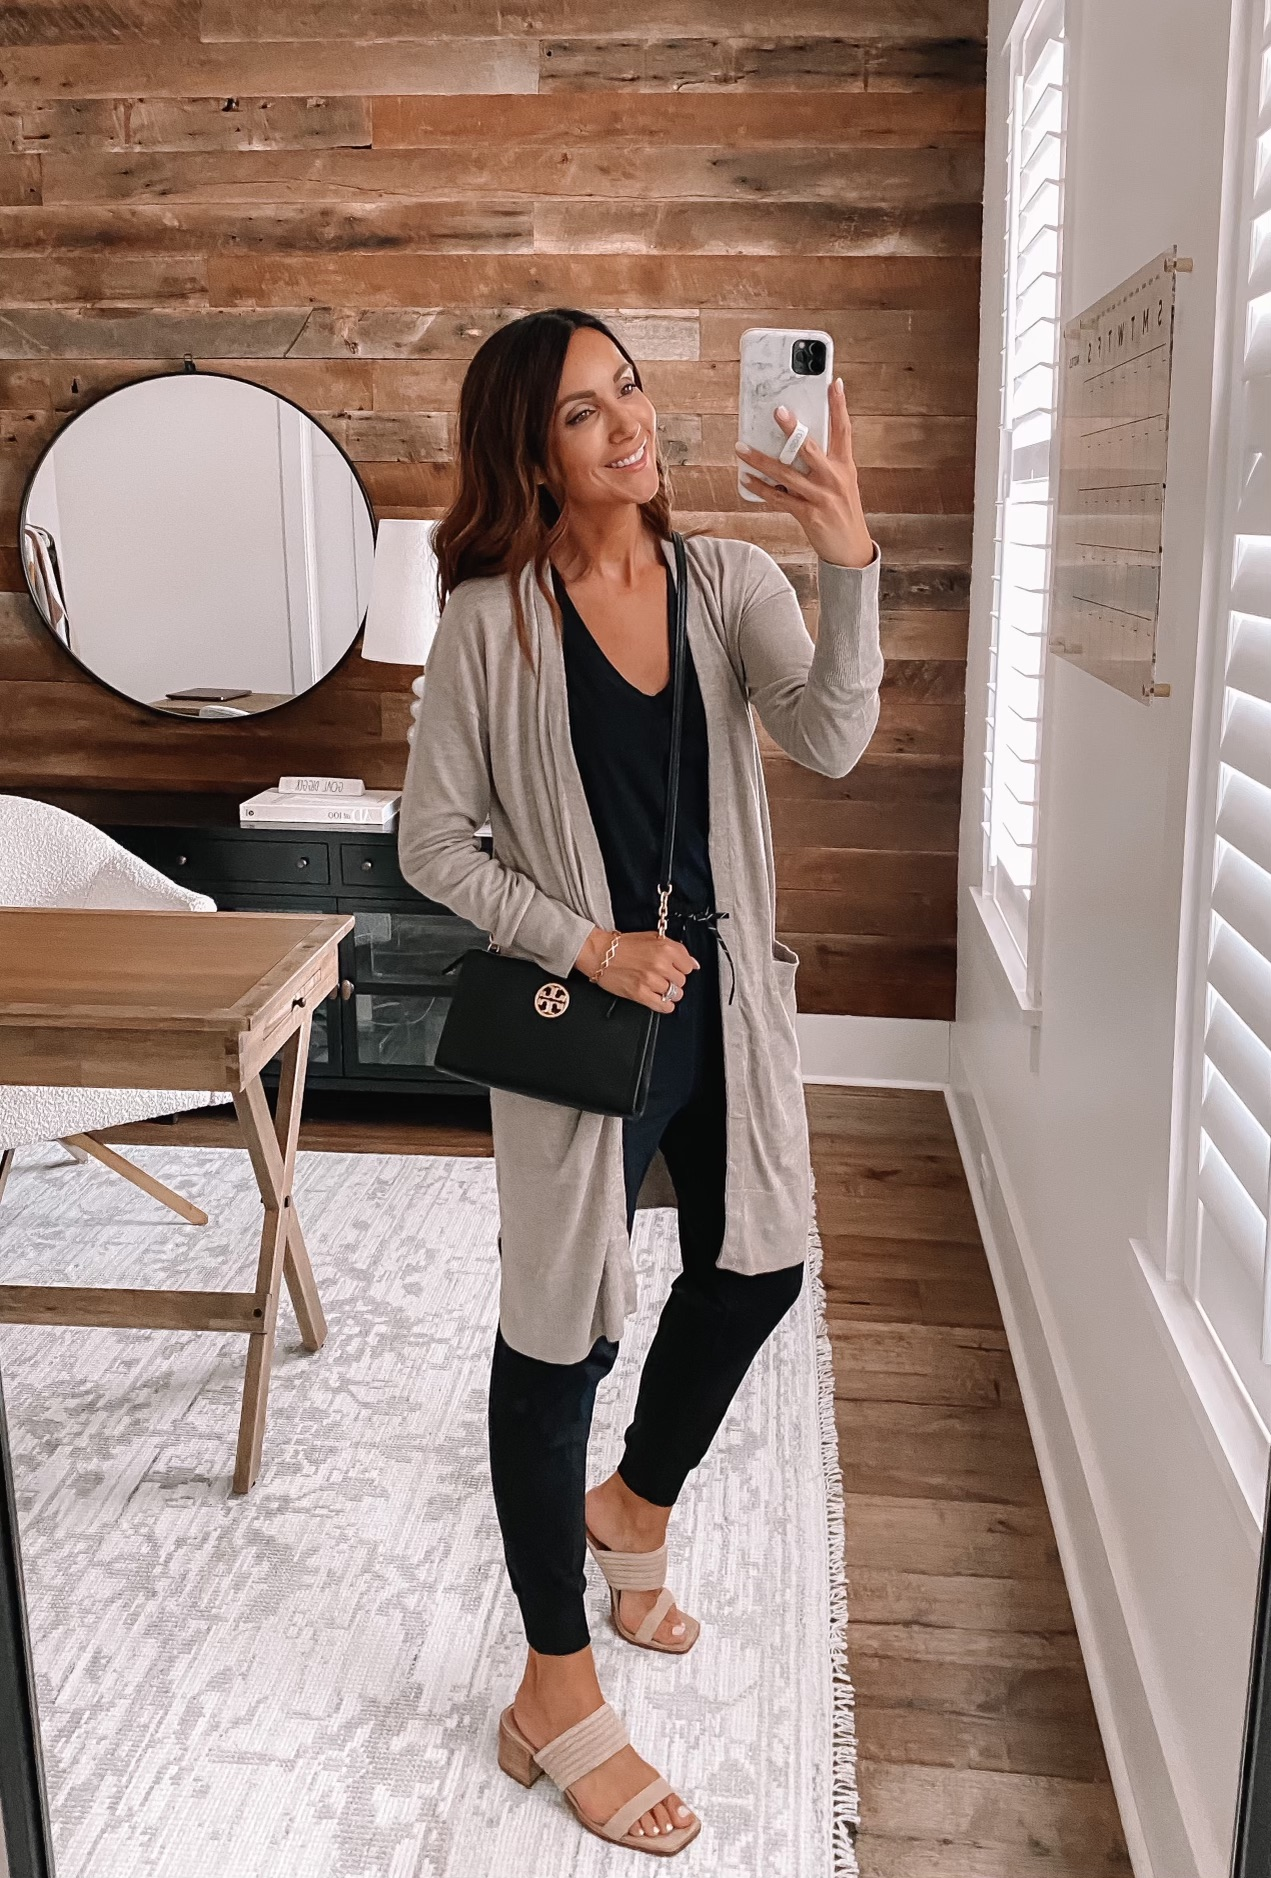 wfh outfit, jumpsuit with cardigan